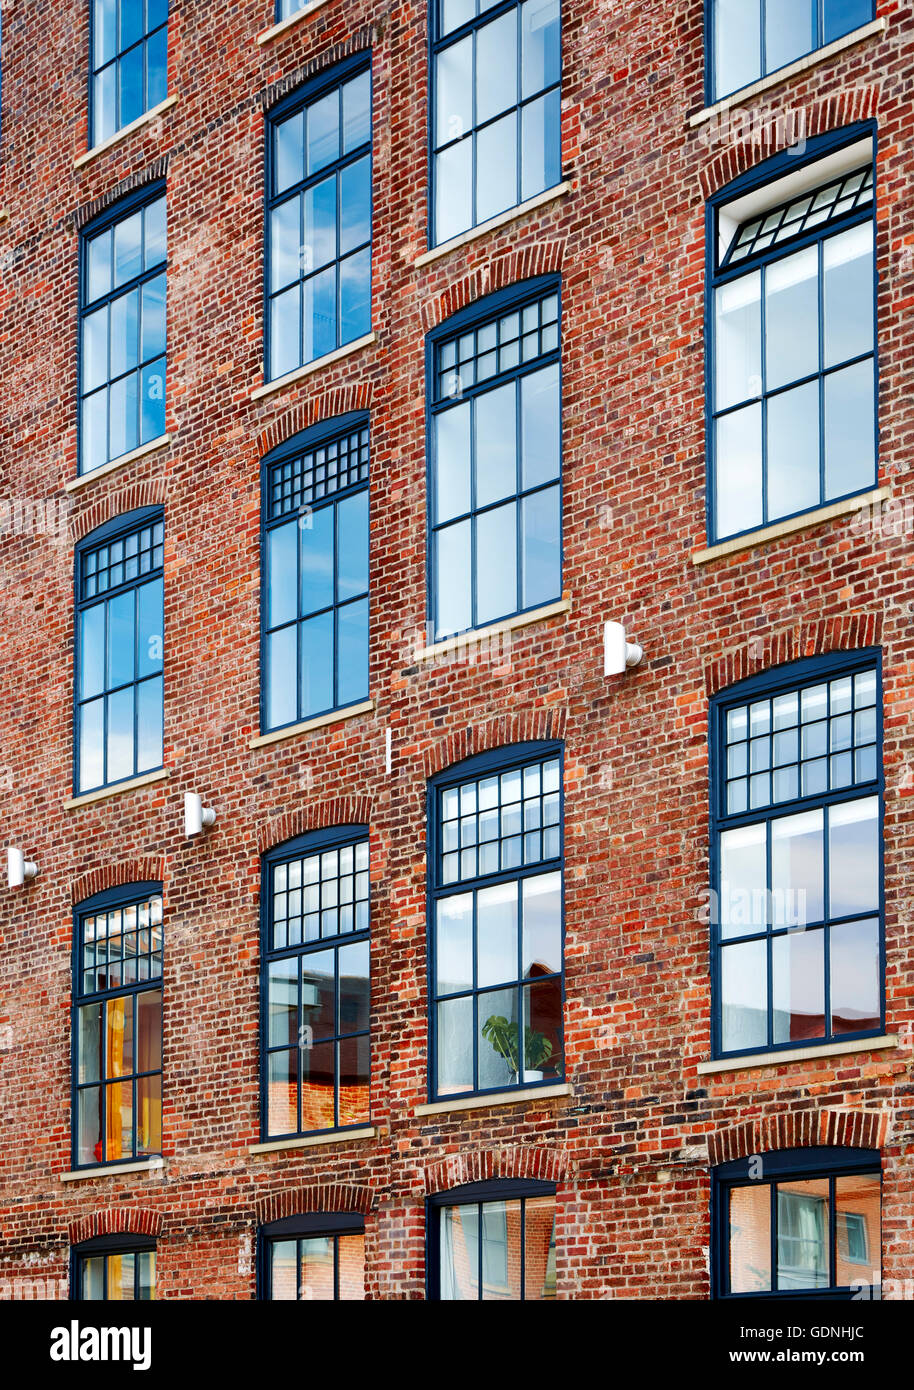 Windows and brickwork of Marshall Mills property redevelopment for mixed use and residential - Stock Image